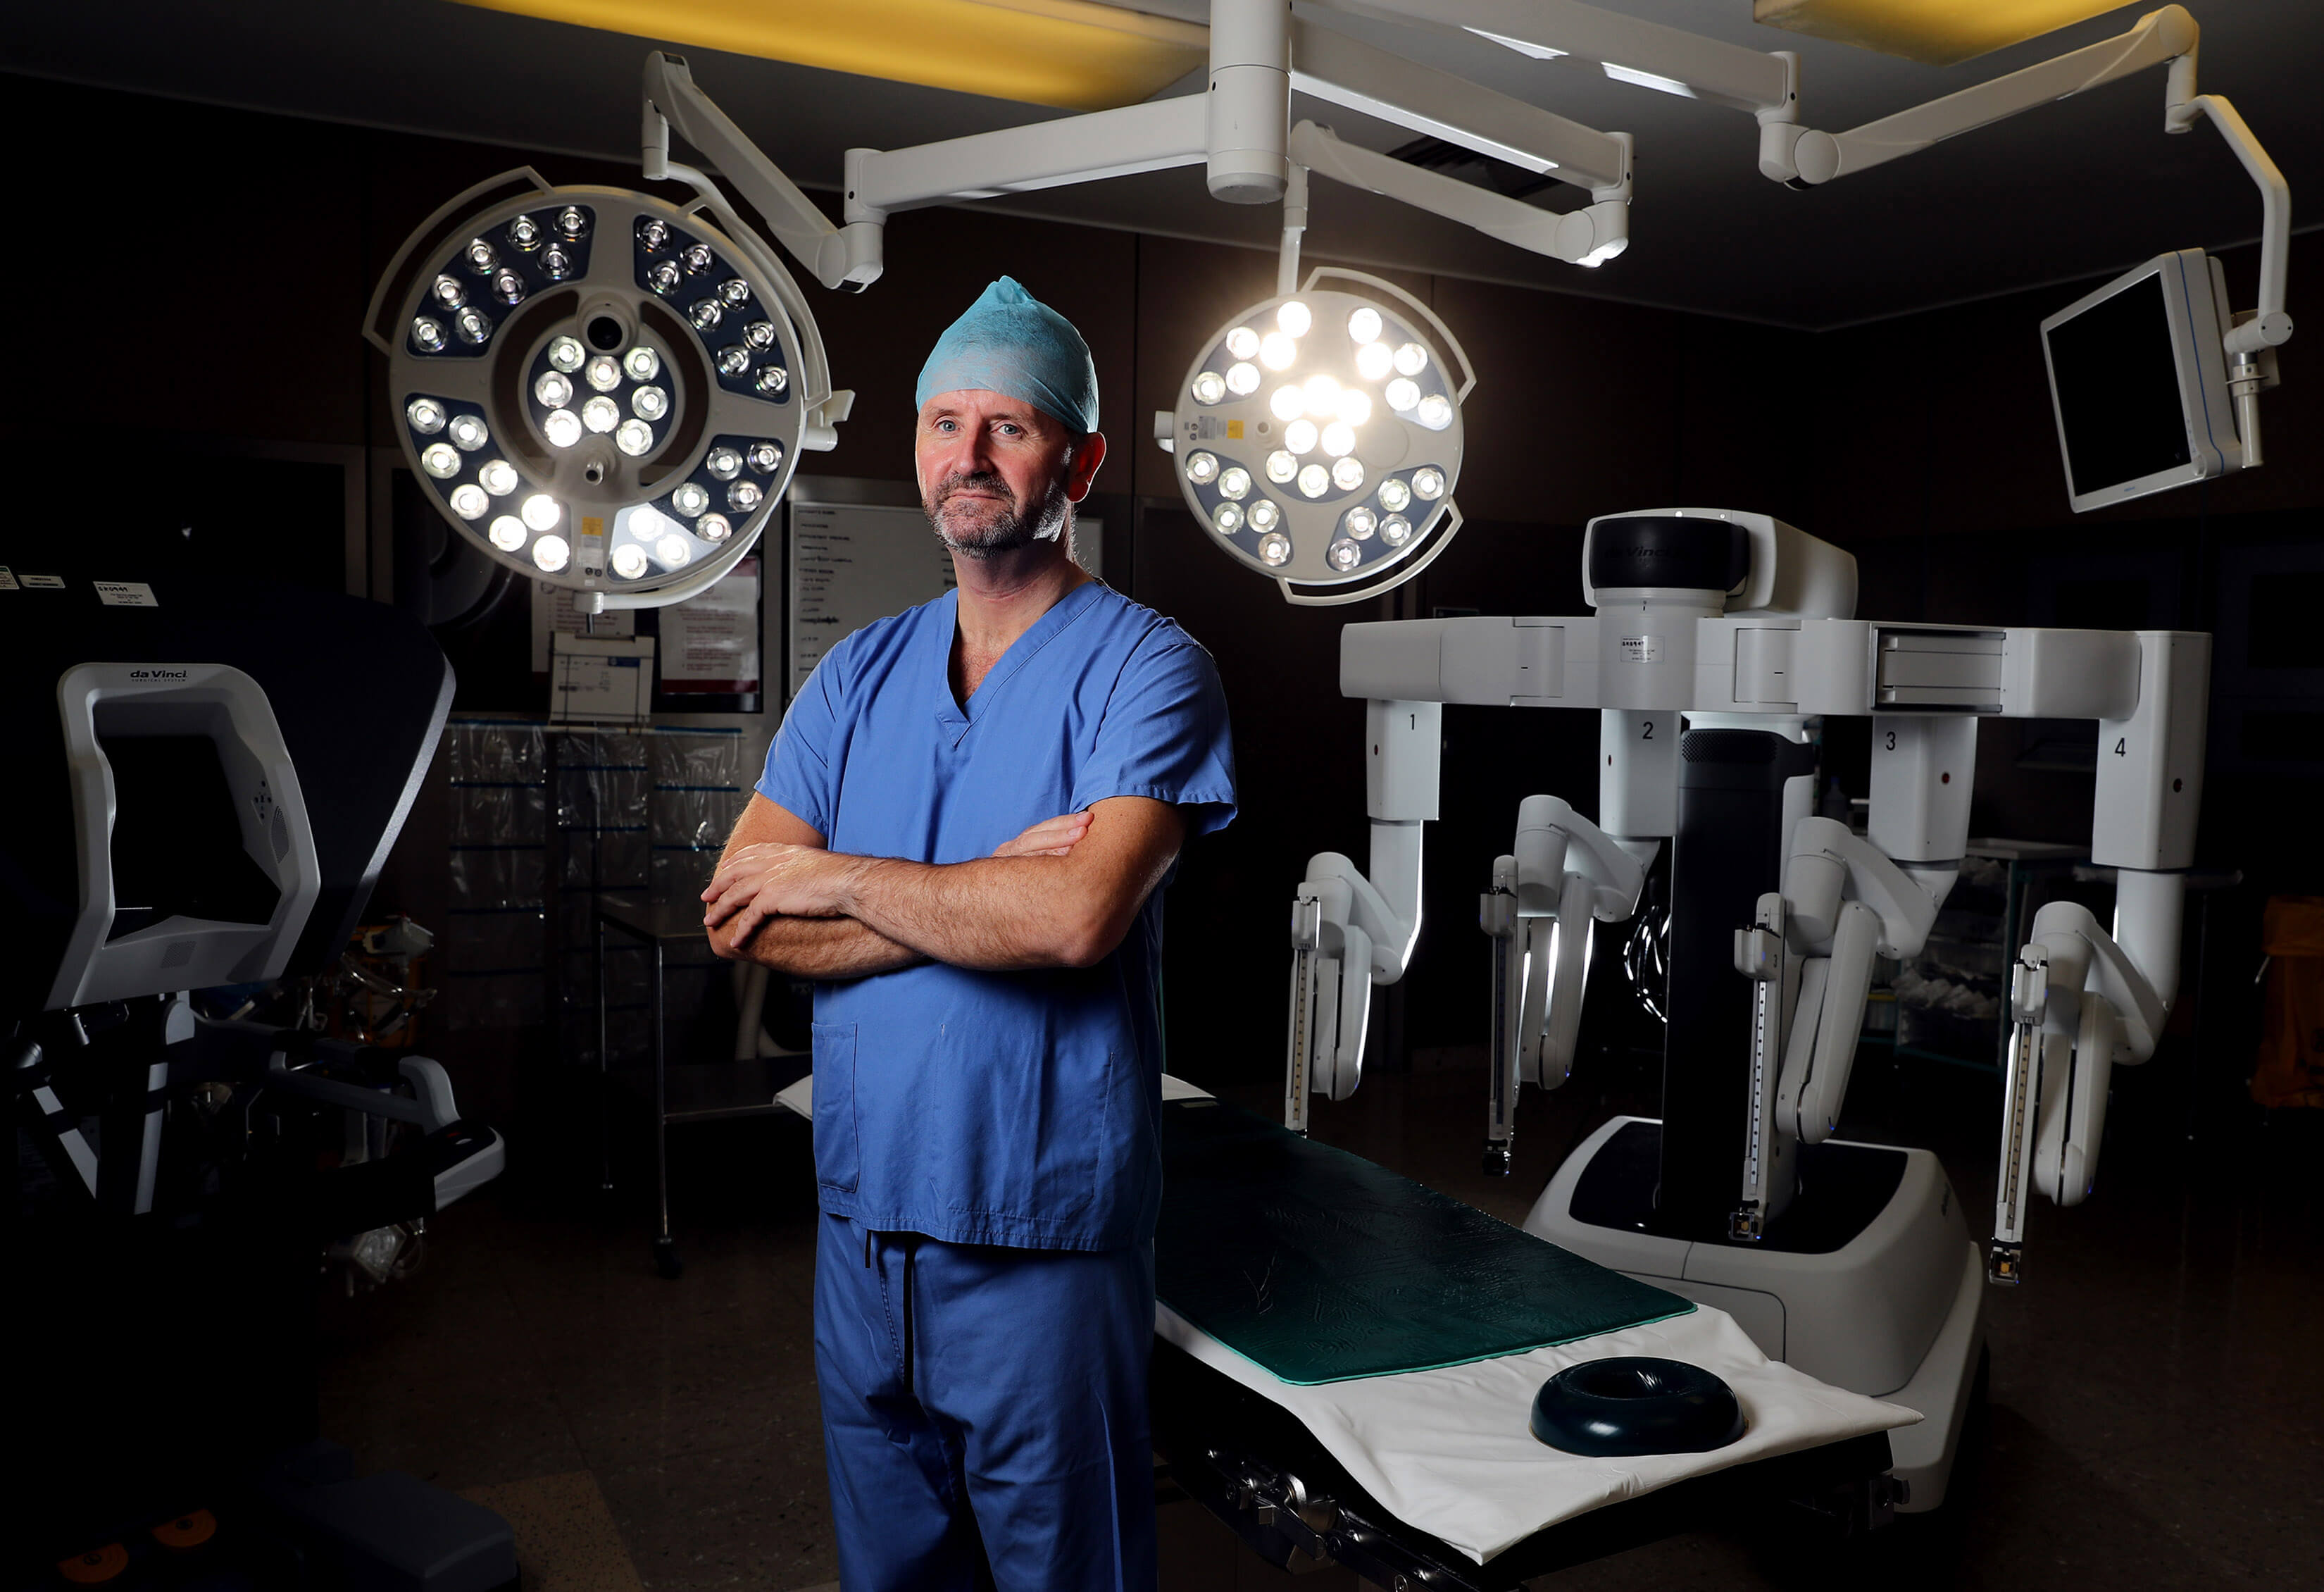 First heart bypass surgery using a robot is performed in Ireland